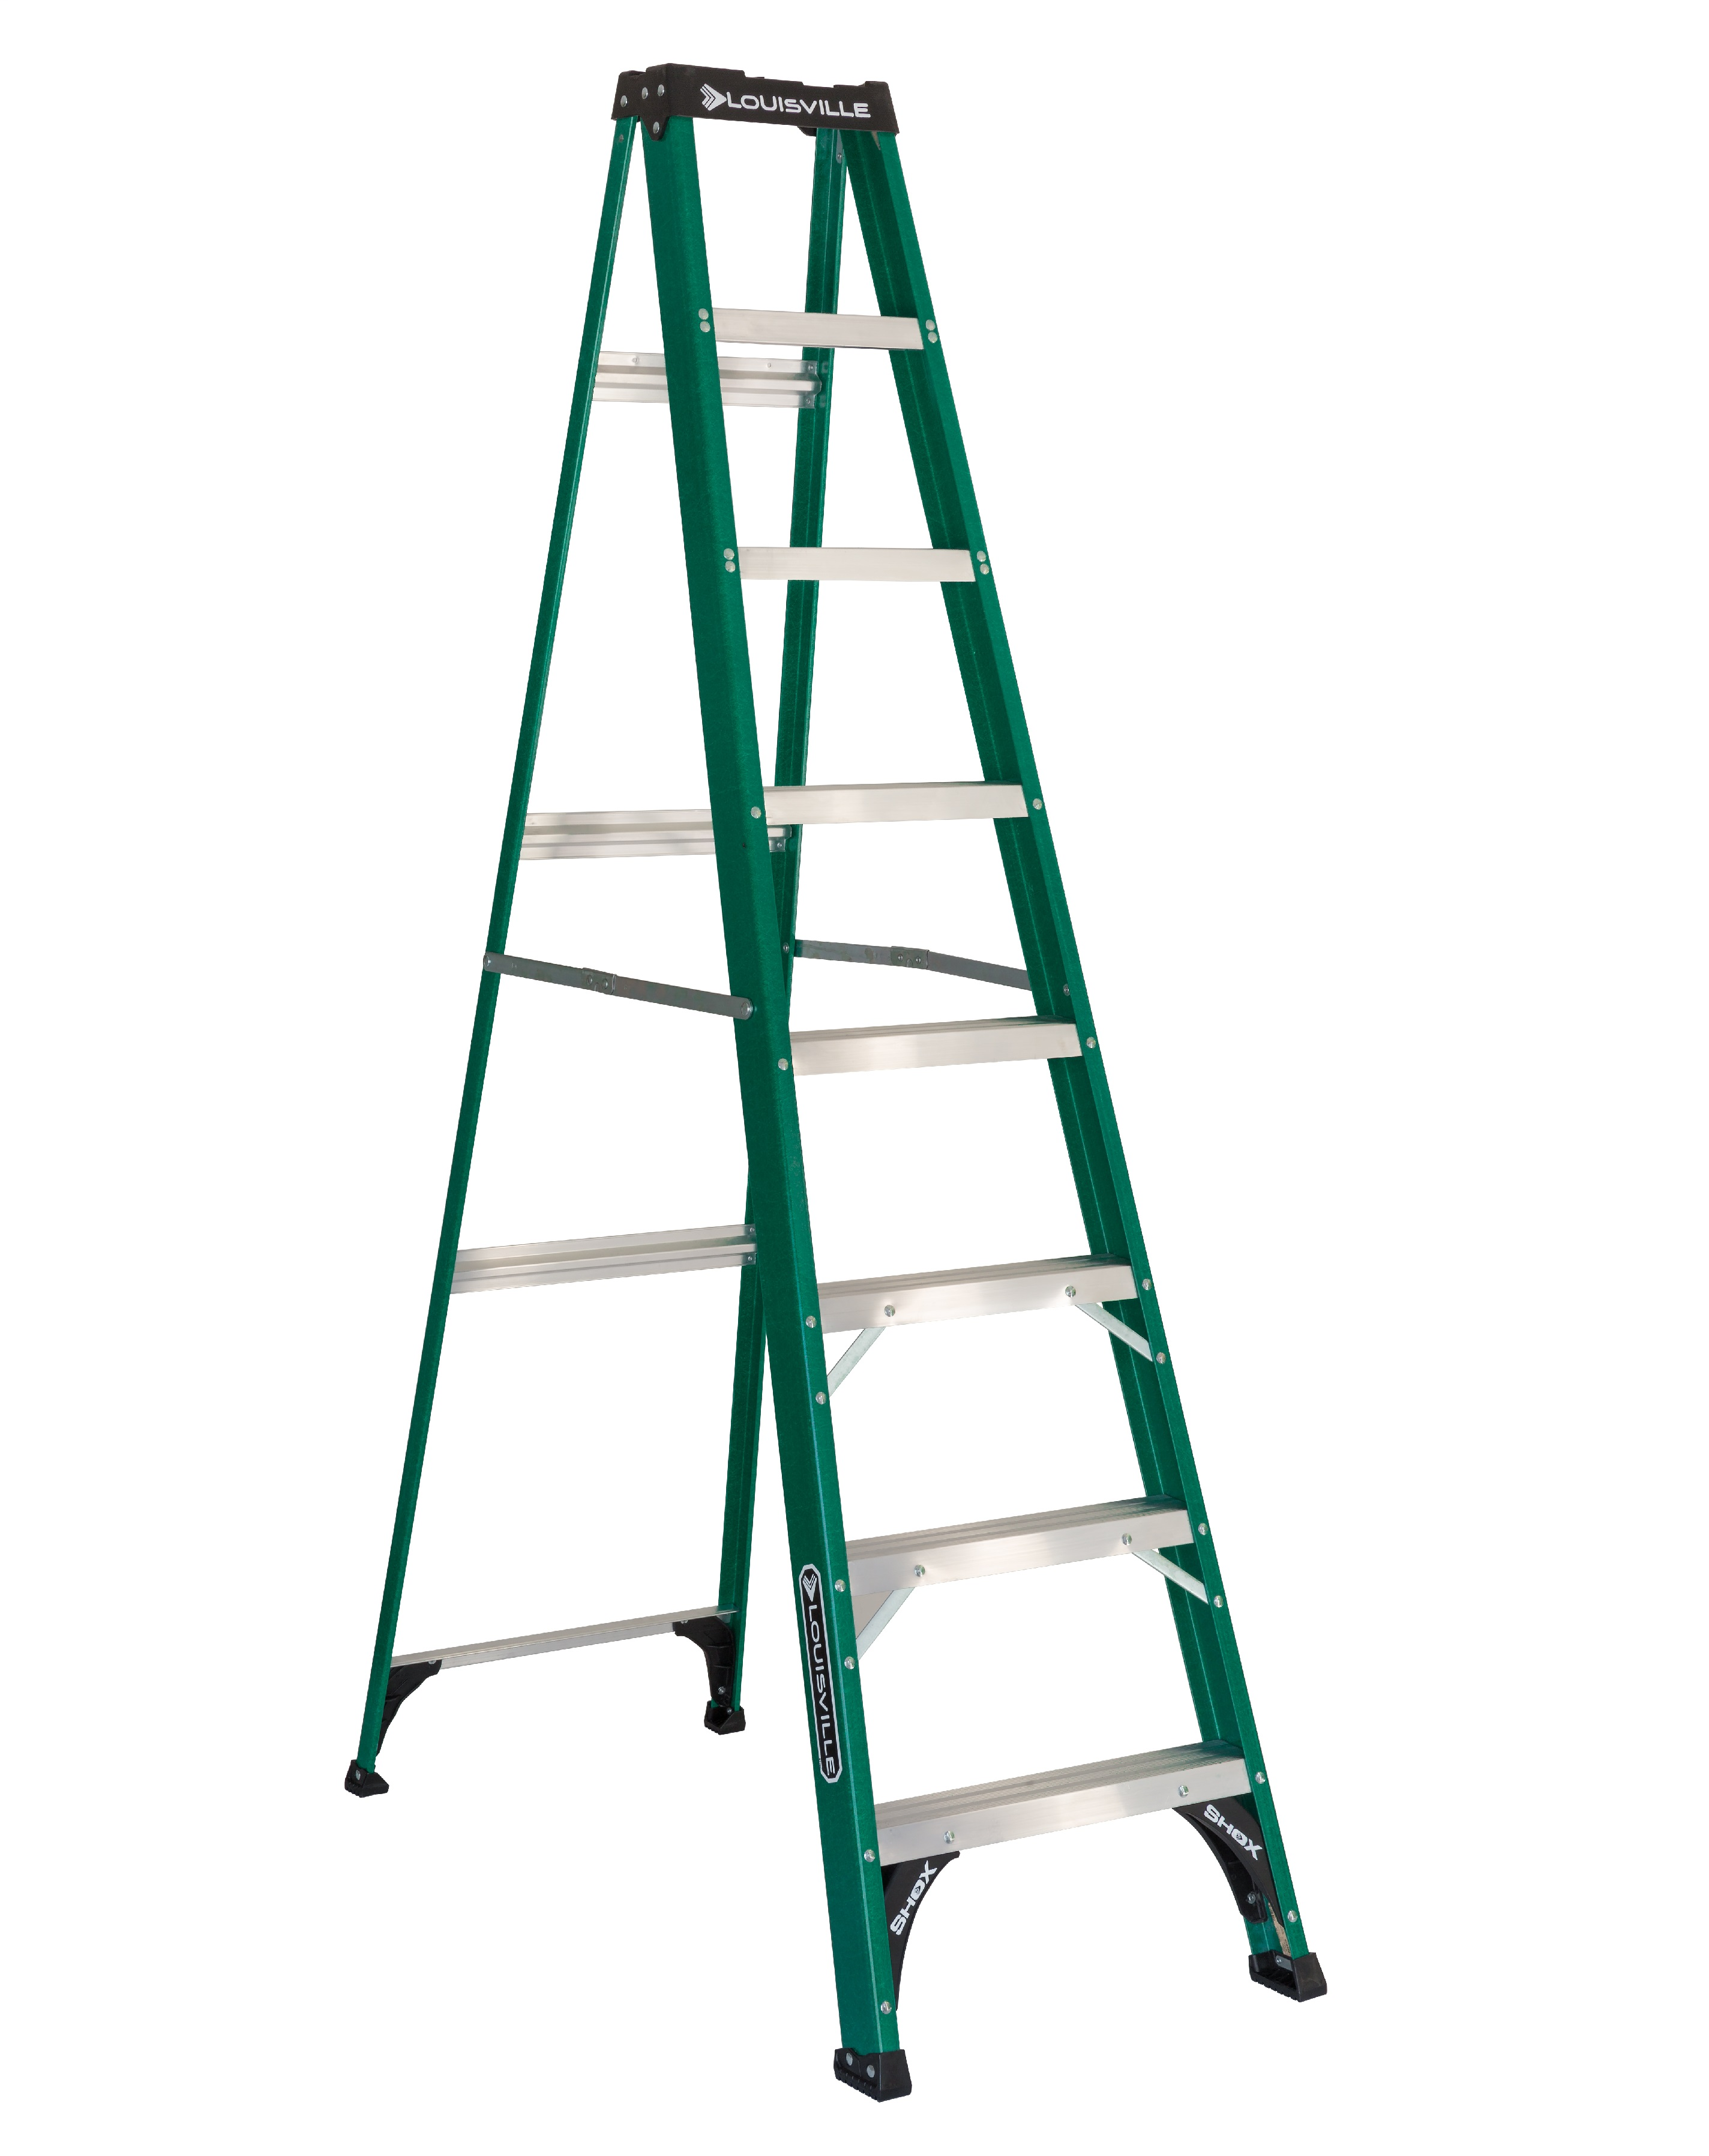 L-VIL FS4008 8FT FBGL STEP LADDERLIKELY SUBJECT TO TAX